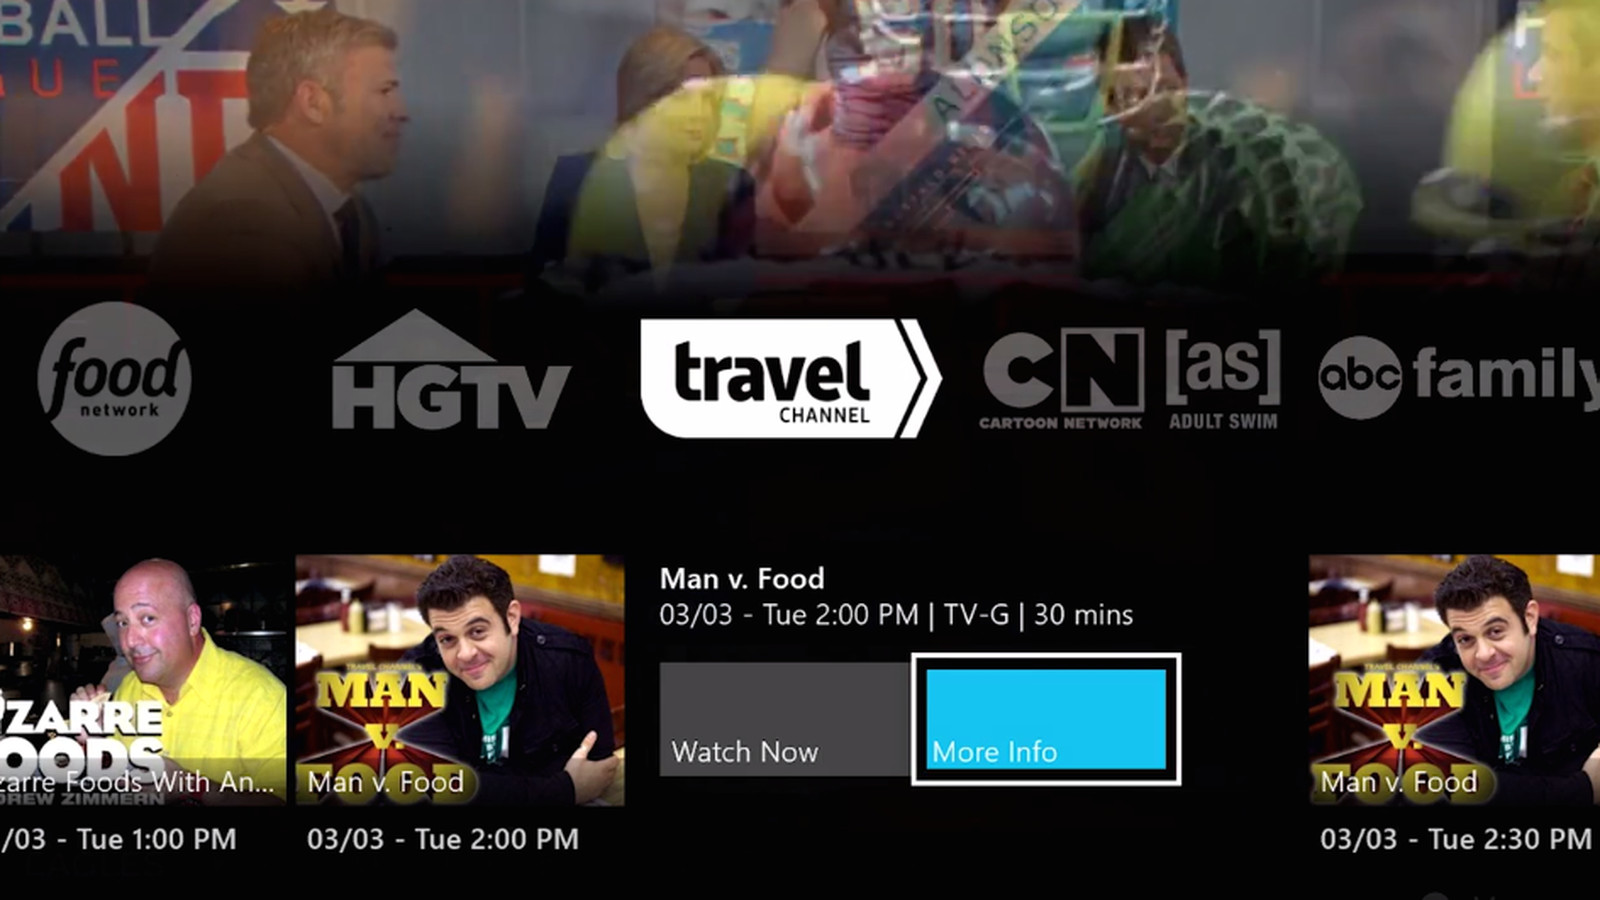 Sling Tv Brings Cable To Xbox One Today Get Your Free